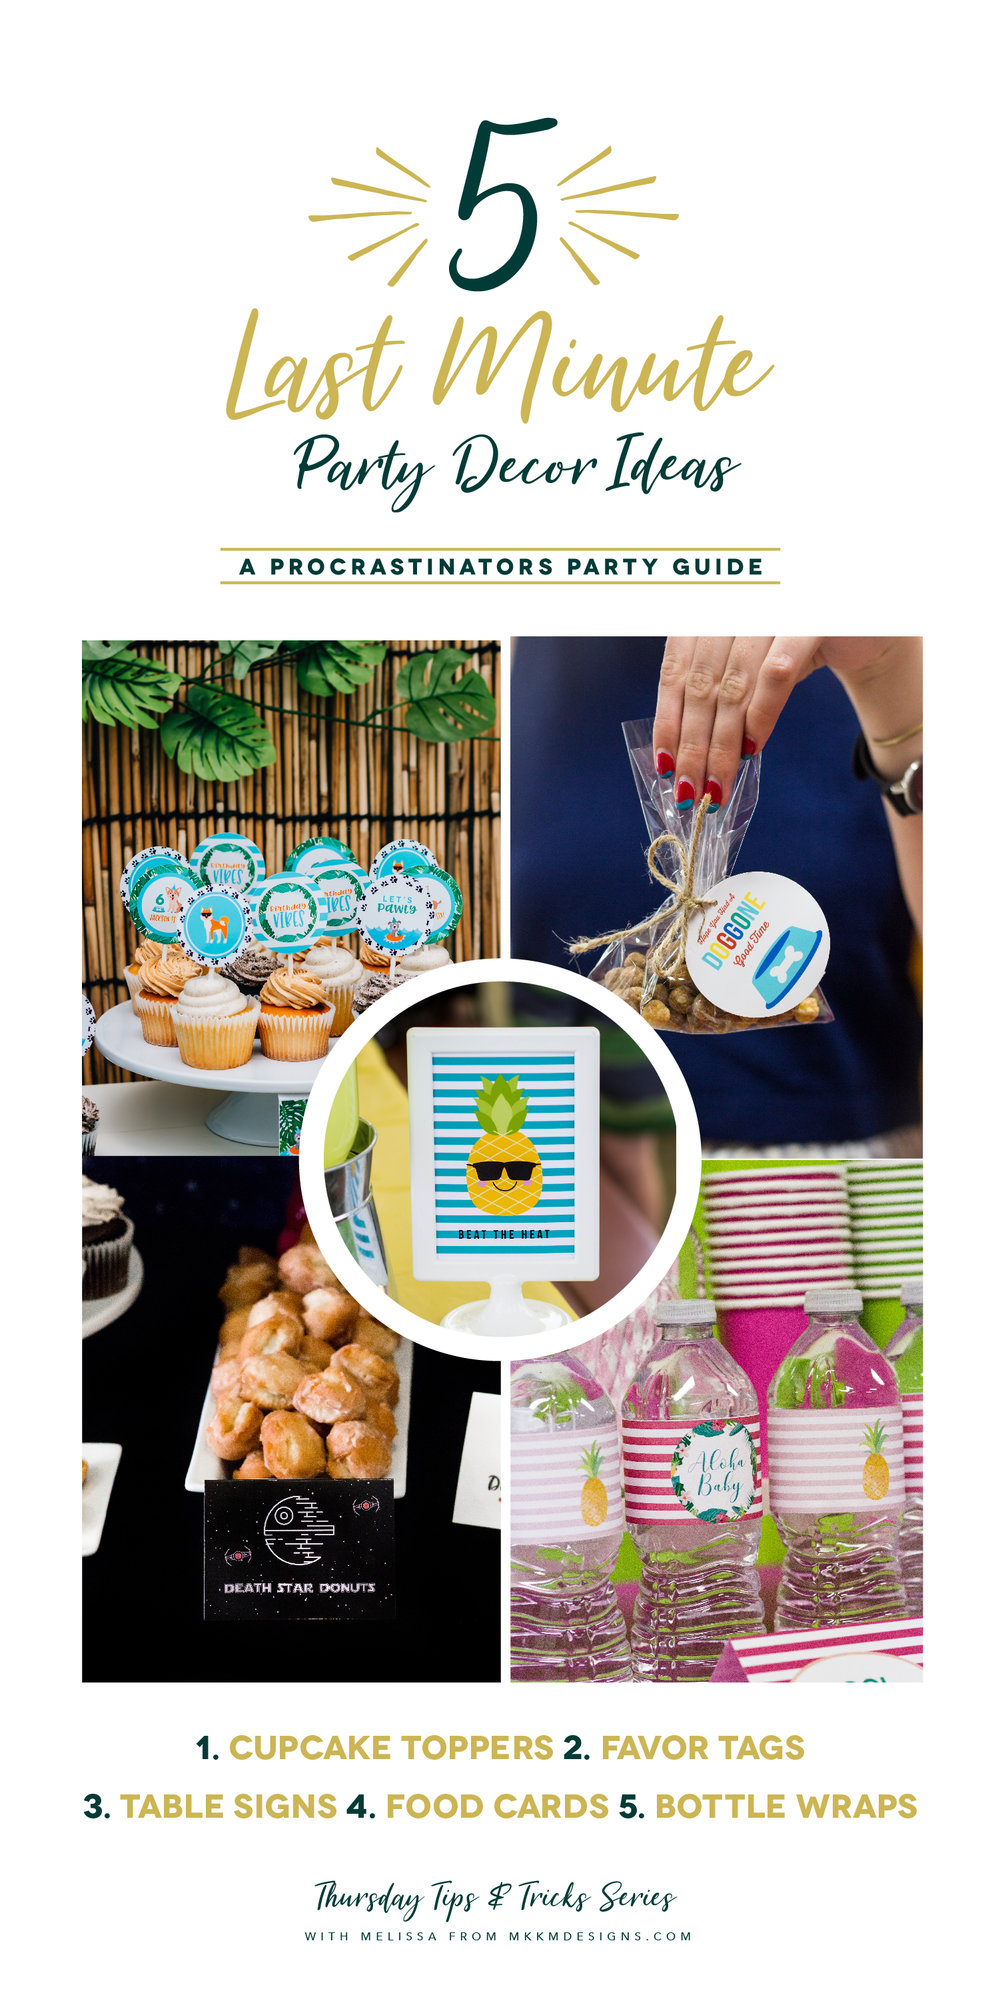 5 Last Minute Ways To Decorate A Party: A Procrastinator's party guide. ✦ Thursday Tips & Tricks Series on MKKM Designs